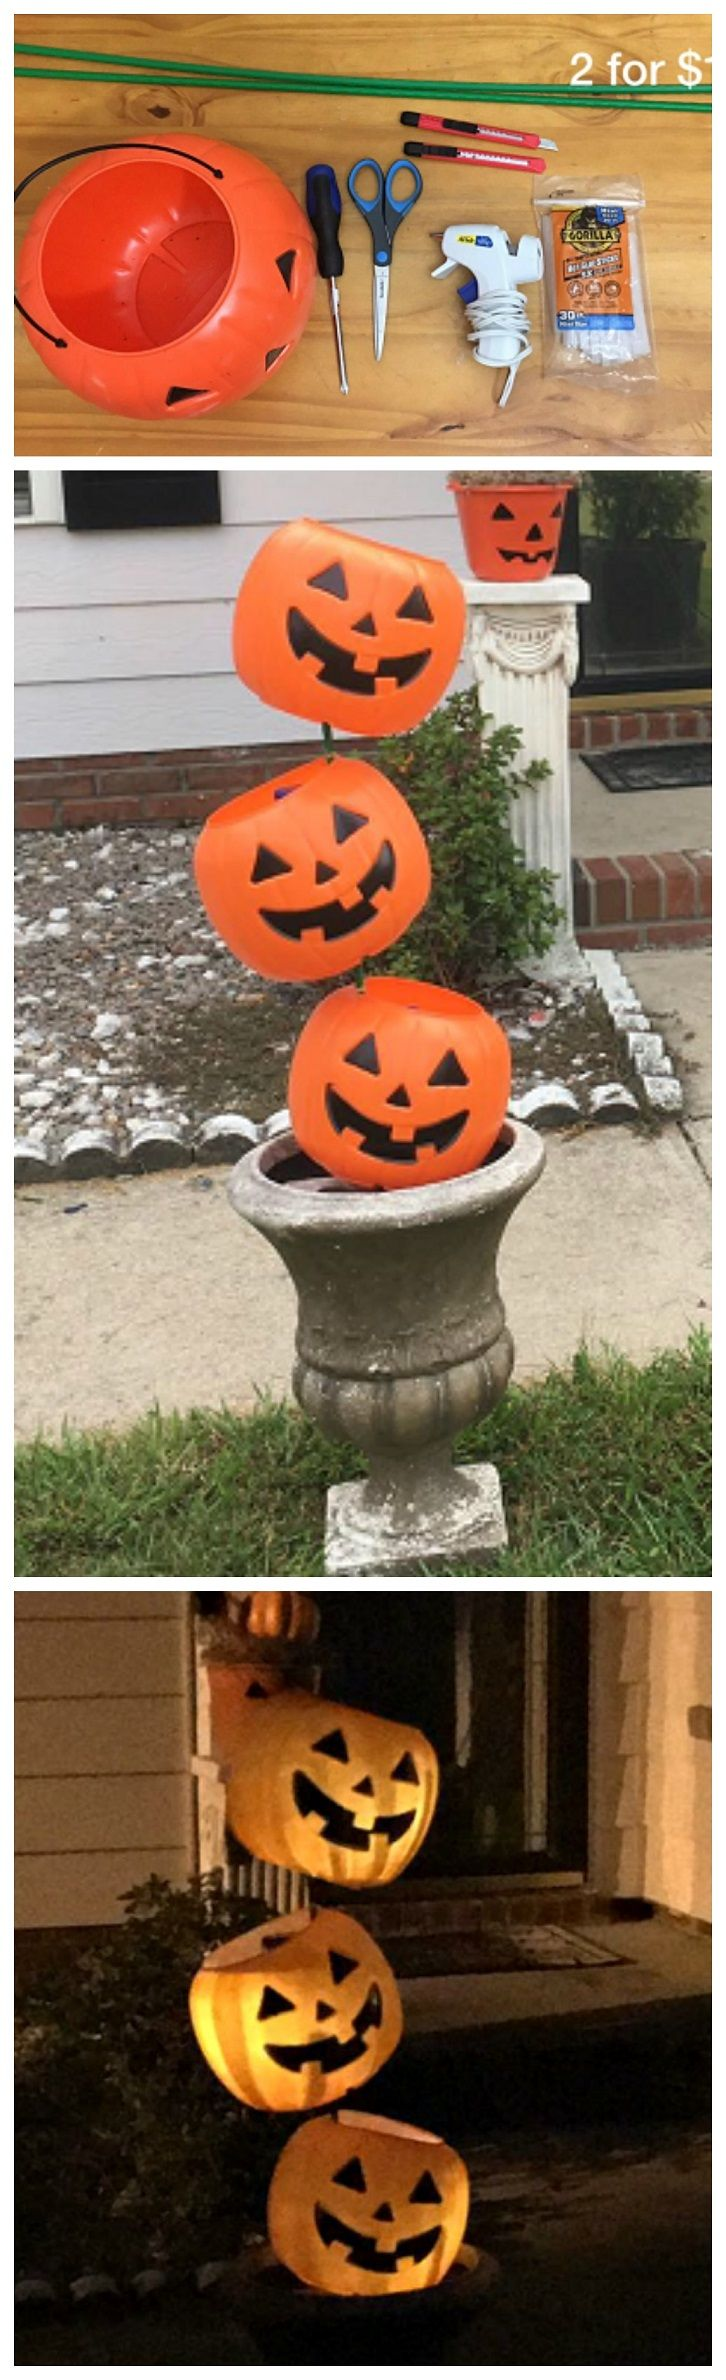 Easy homemade halloween decorations - Make A Plastic Pumpkin Pail Tipsy Decoration For Halloween Such A Cheap And Easy Craft